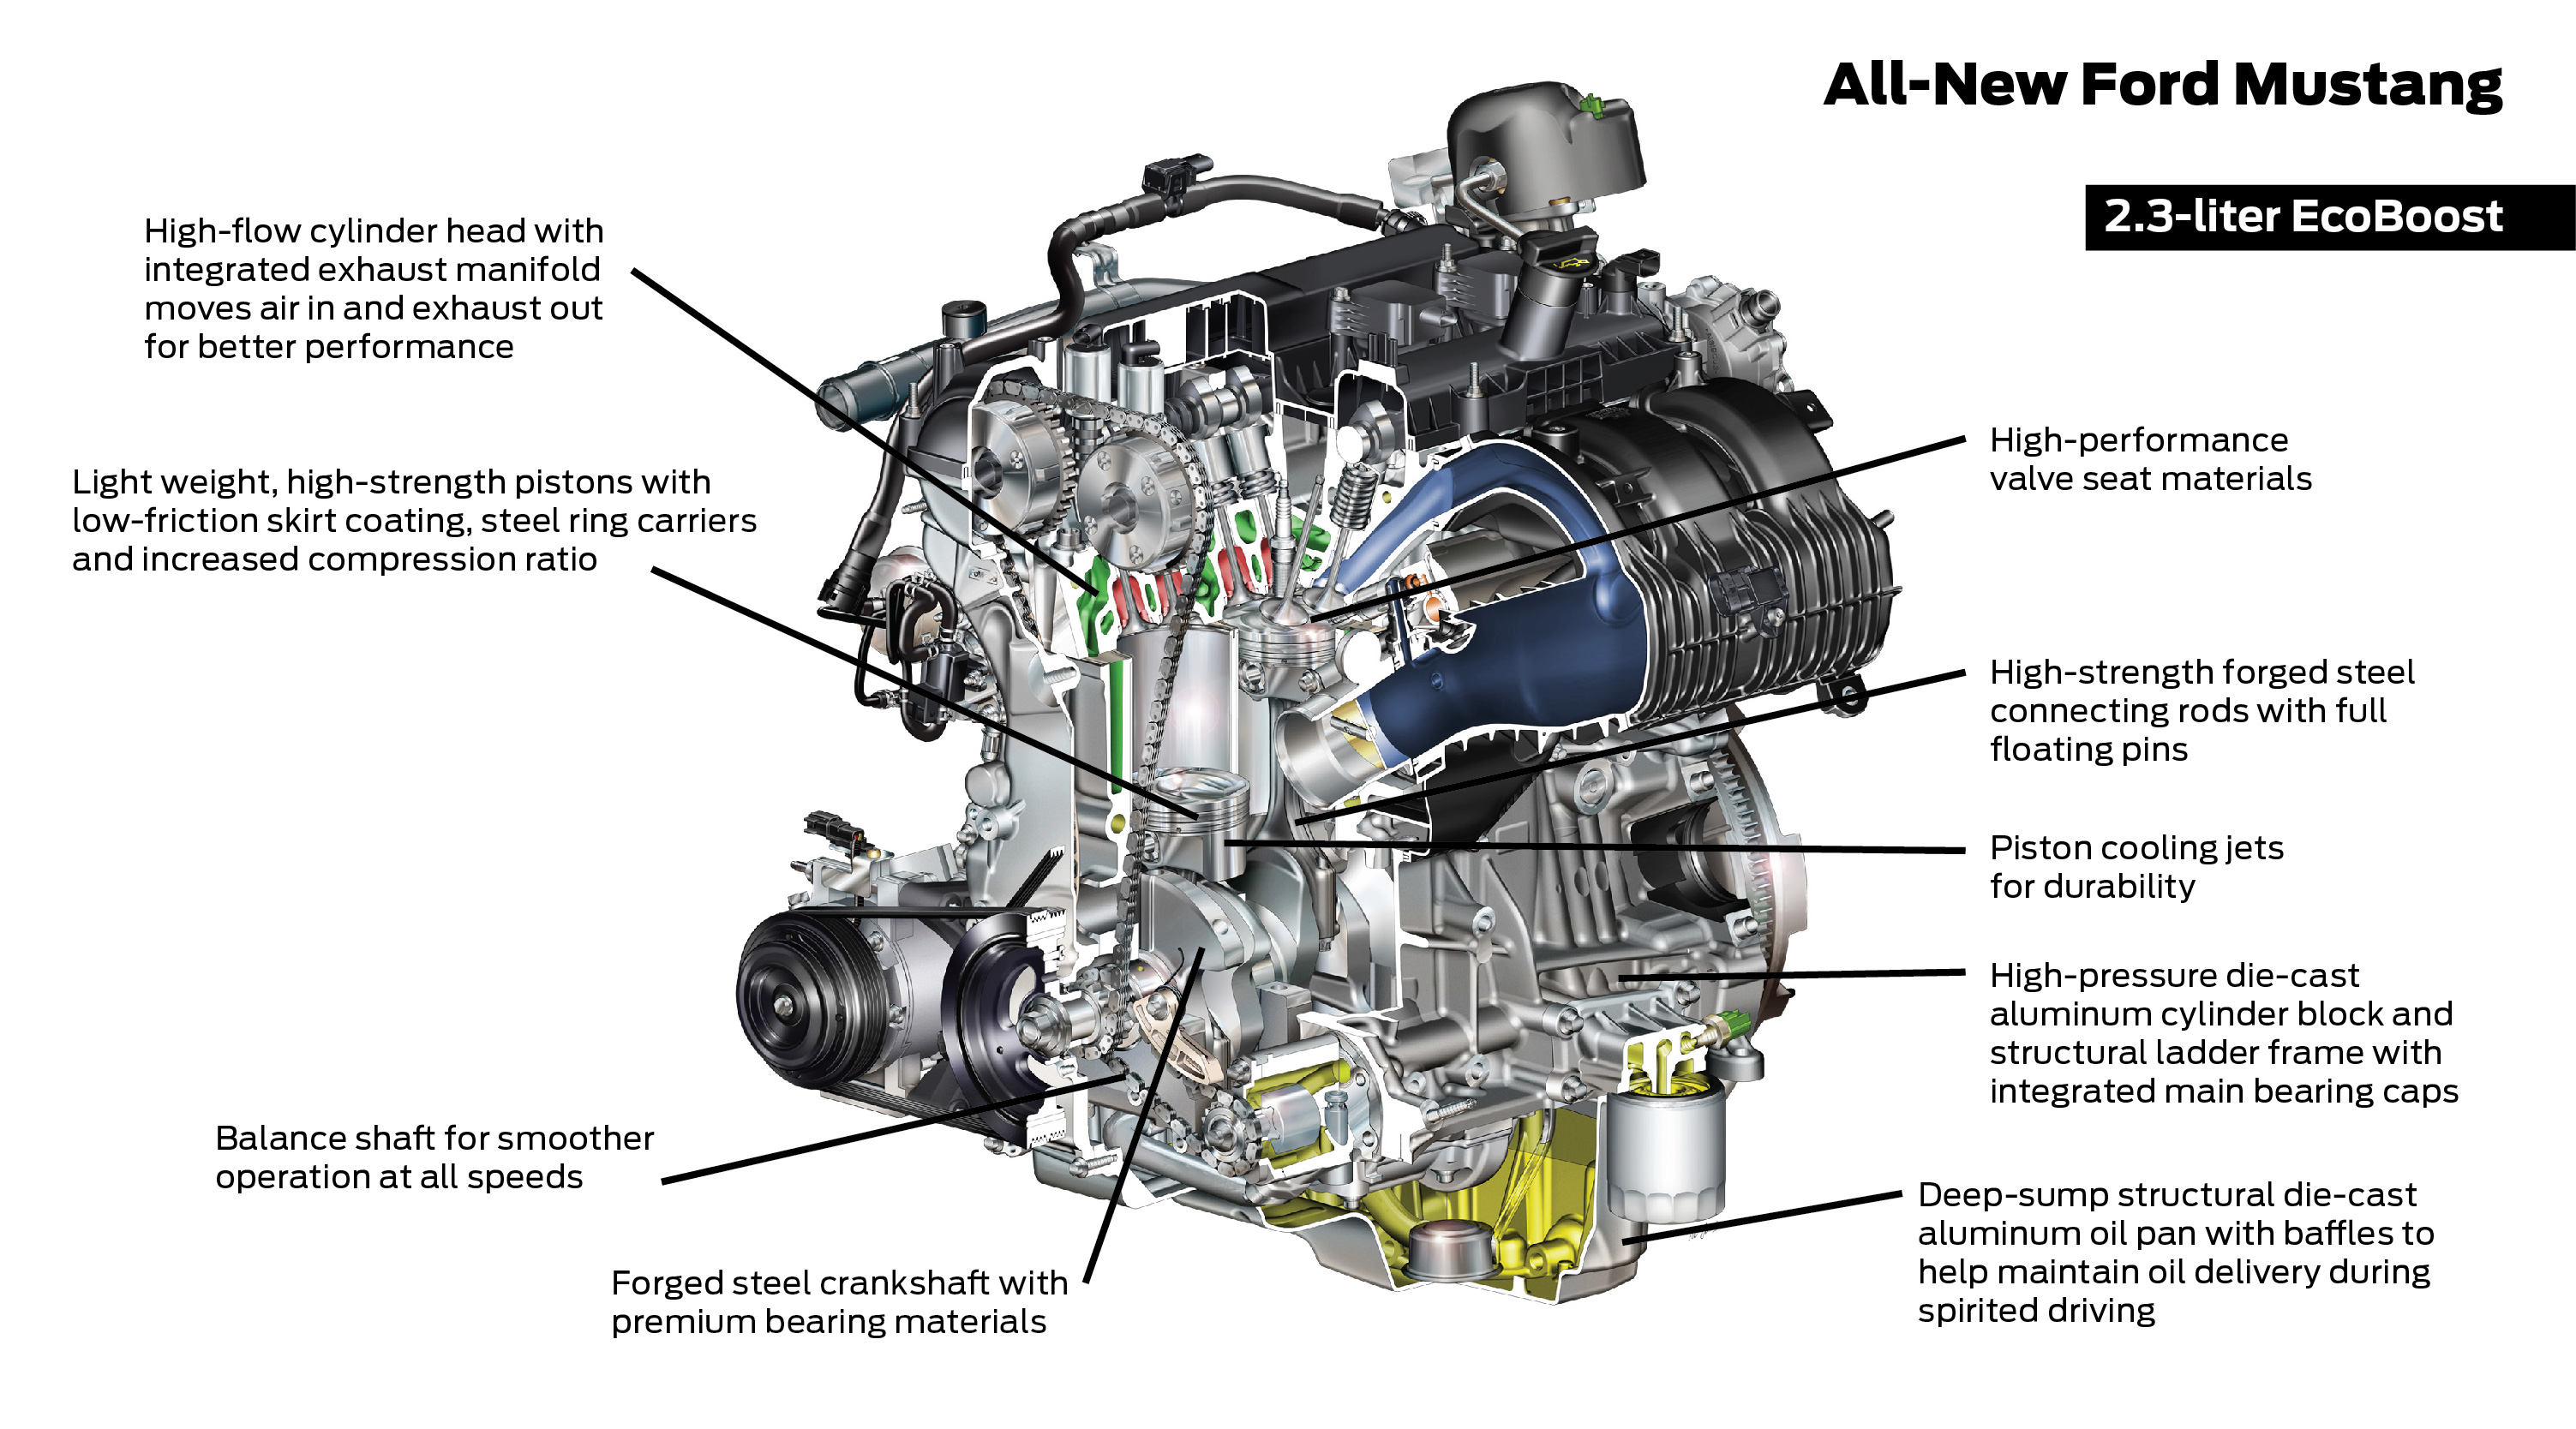 A Simple Guide To The 2015 Ford Mustang 23 Liter Ecoboost Engine 92520 on Jeep Grand Cherokee Water Pump